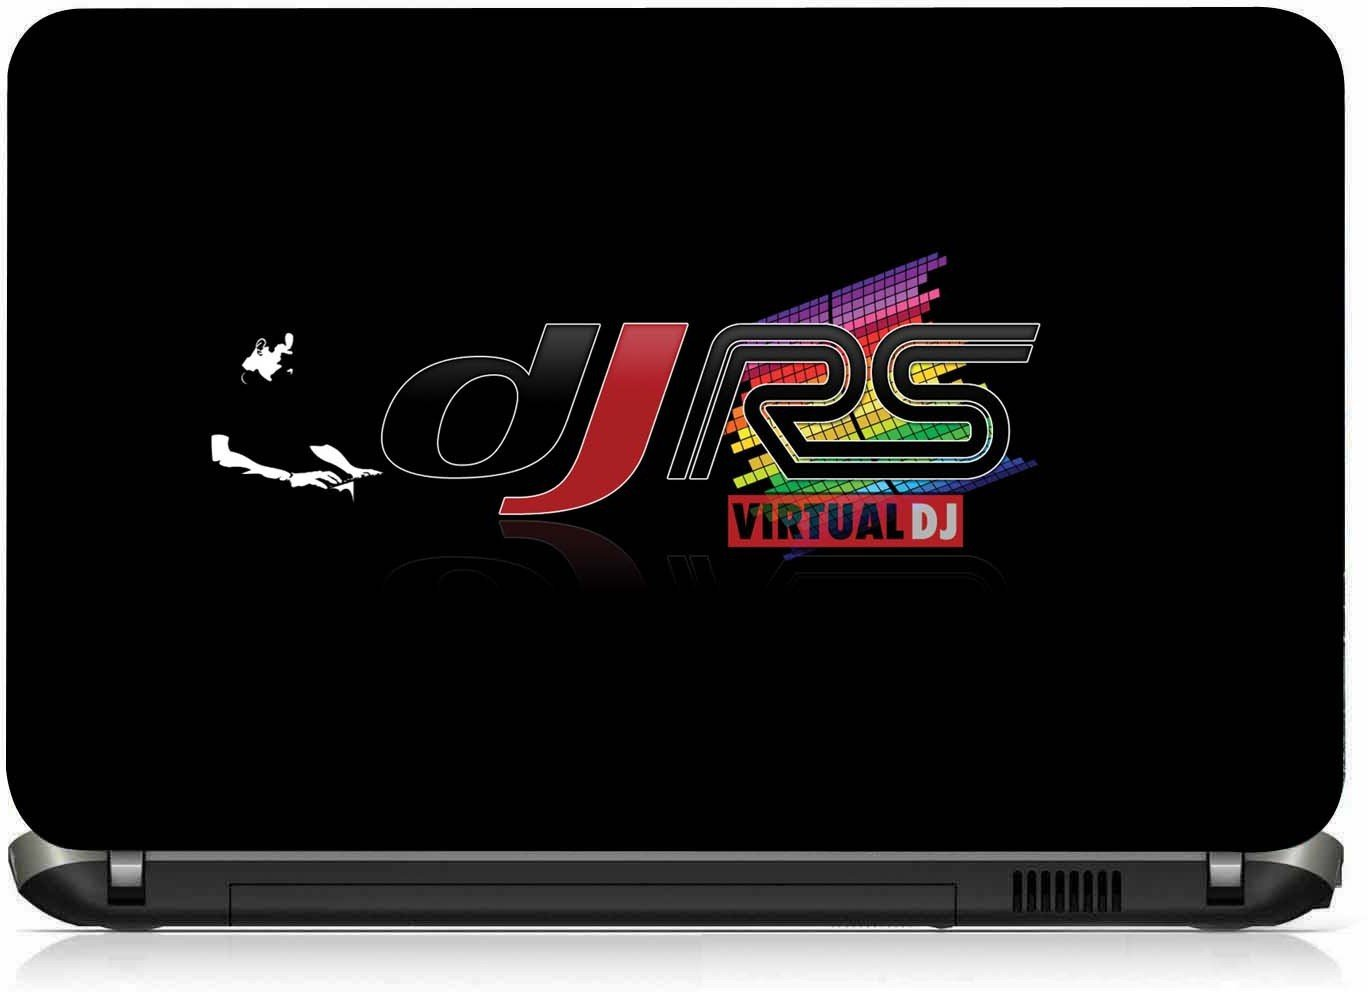 Vi collections dj rs logo in music pvc laptop decal free size for 13 inch to 15 6 inches buy vi collections dj rs logo in music pvc laptop decal free